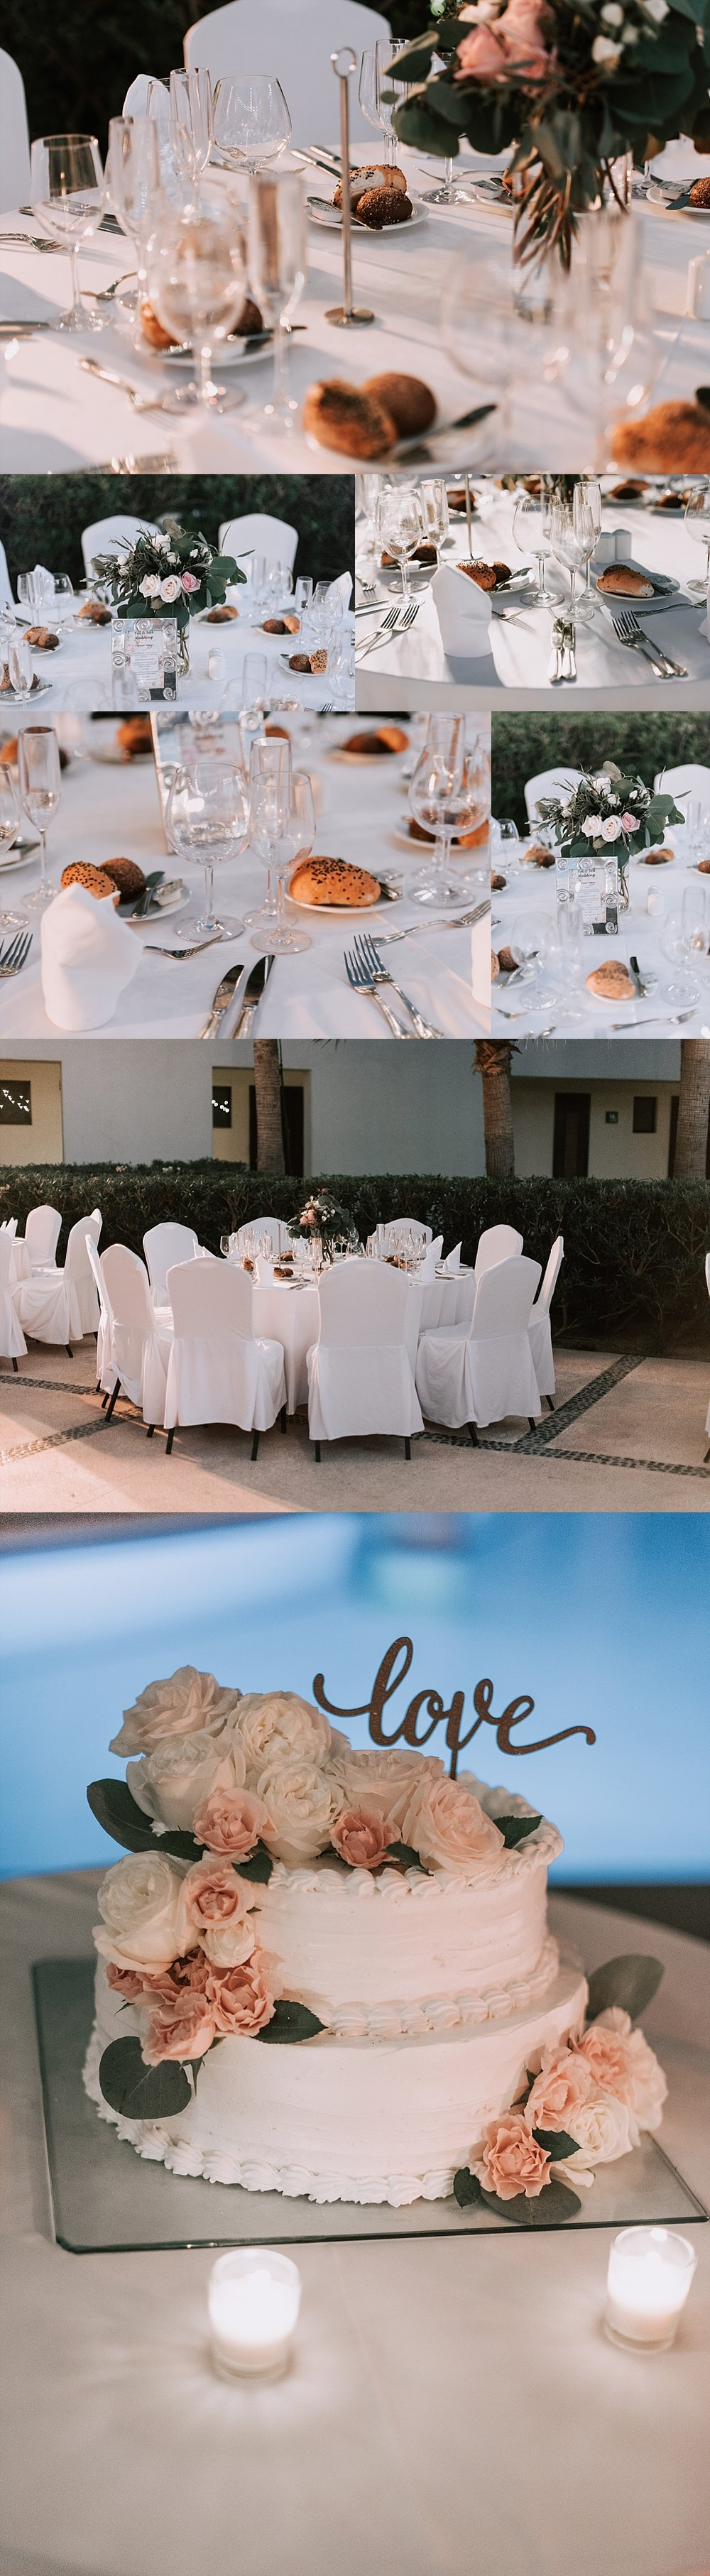 dreamy cabo beach wedding_0009.jpg